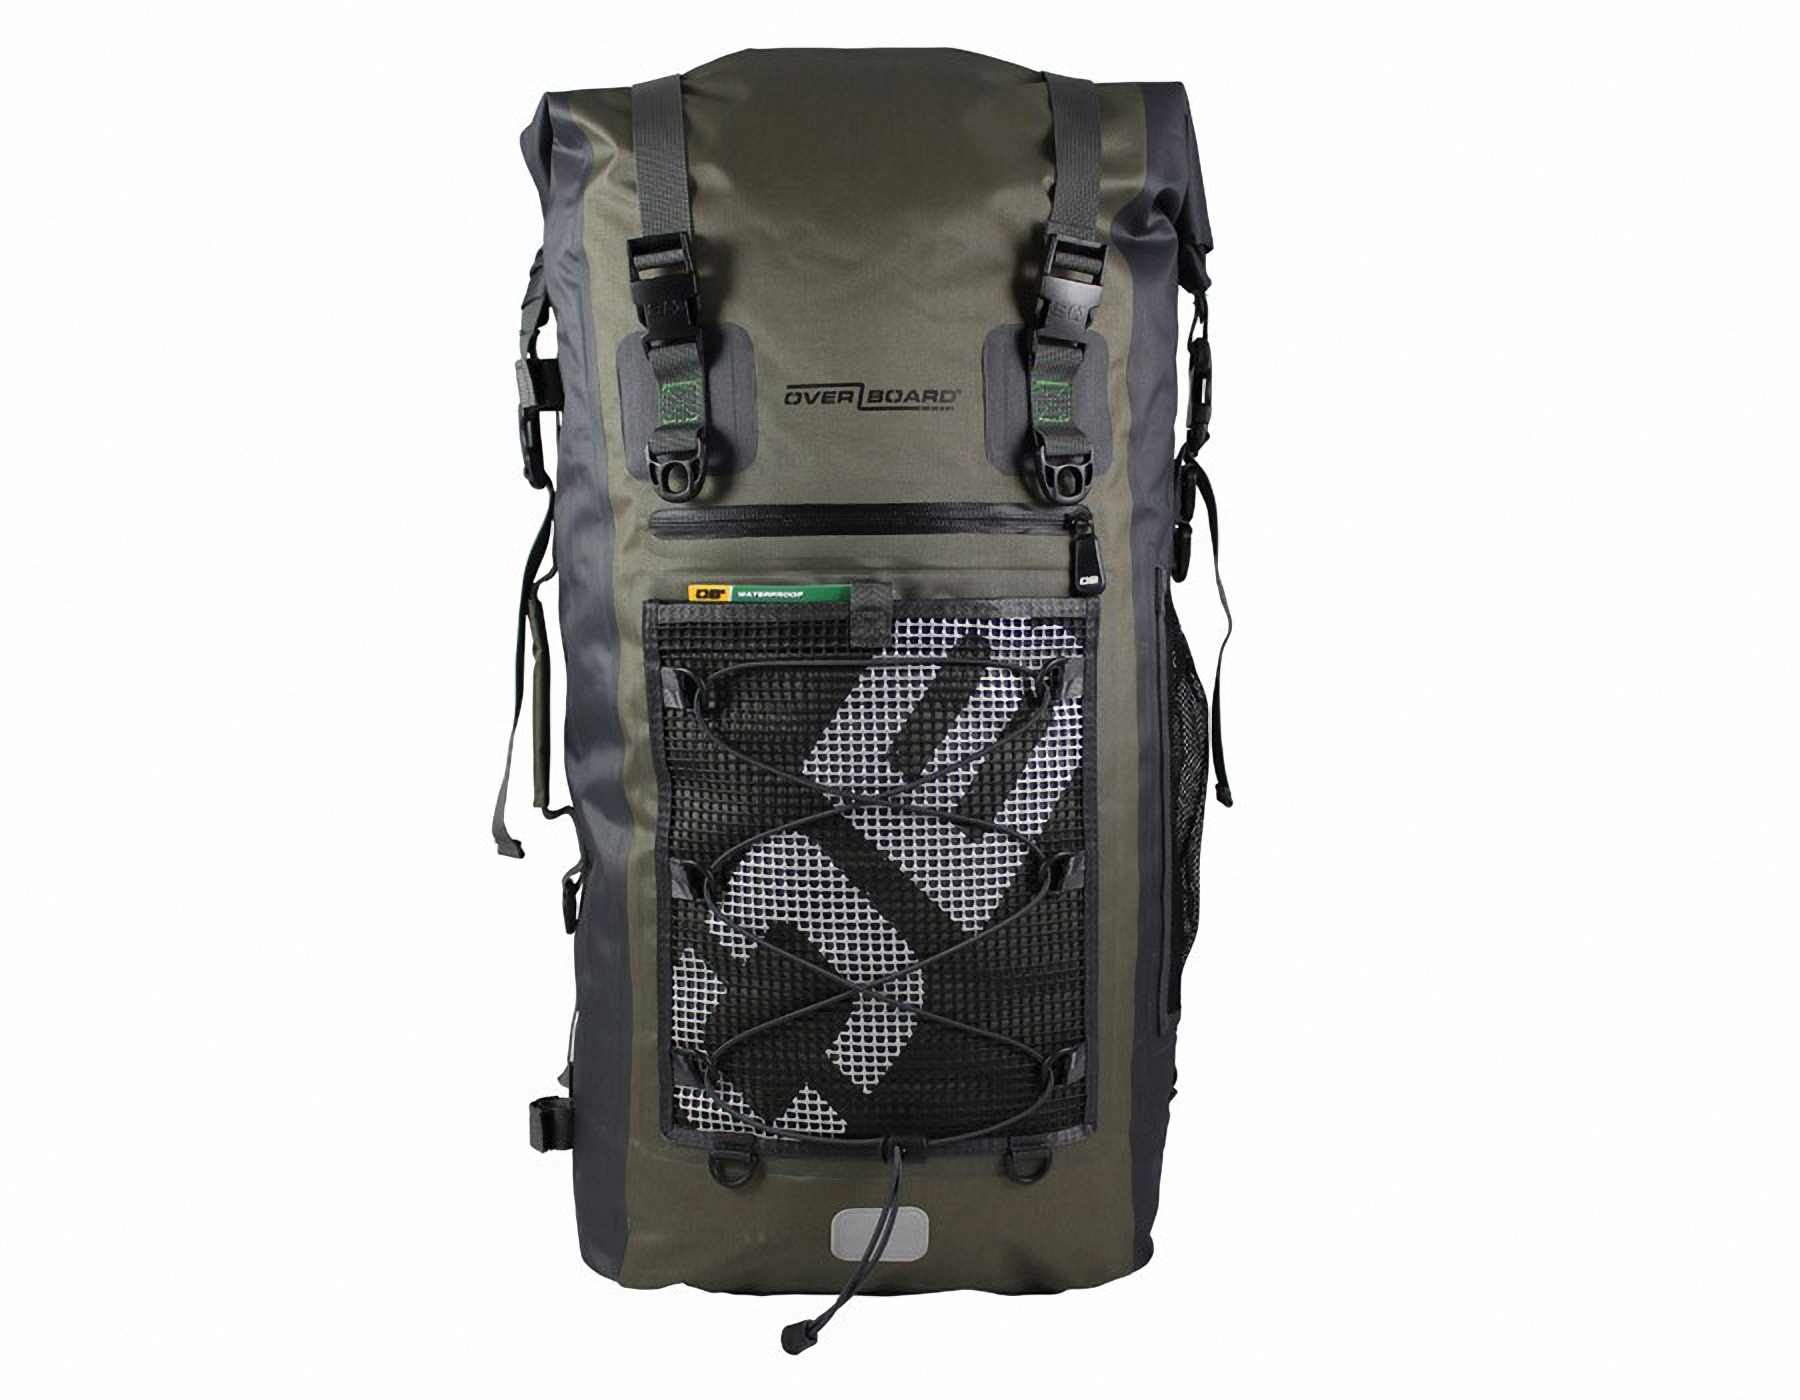 Водонепроницаемый рюкзак OverBoard OB1119G - Ultra-light Waterproof Backpack - 50L. Фото 3